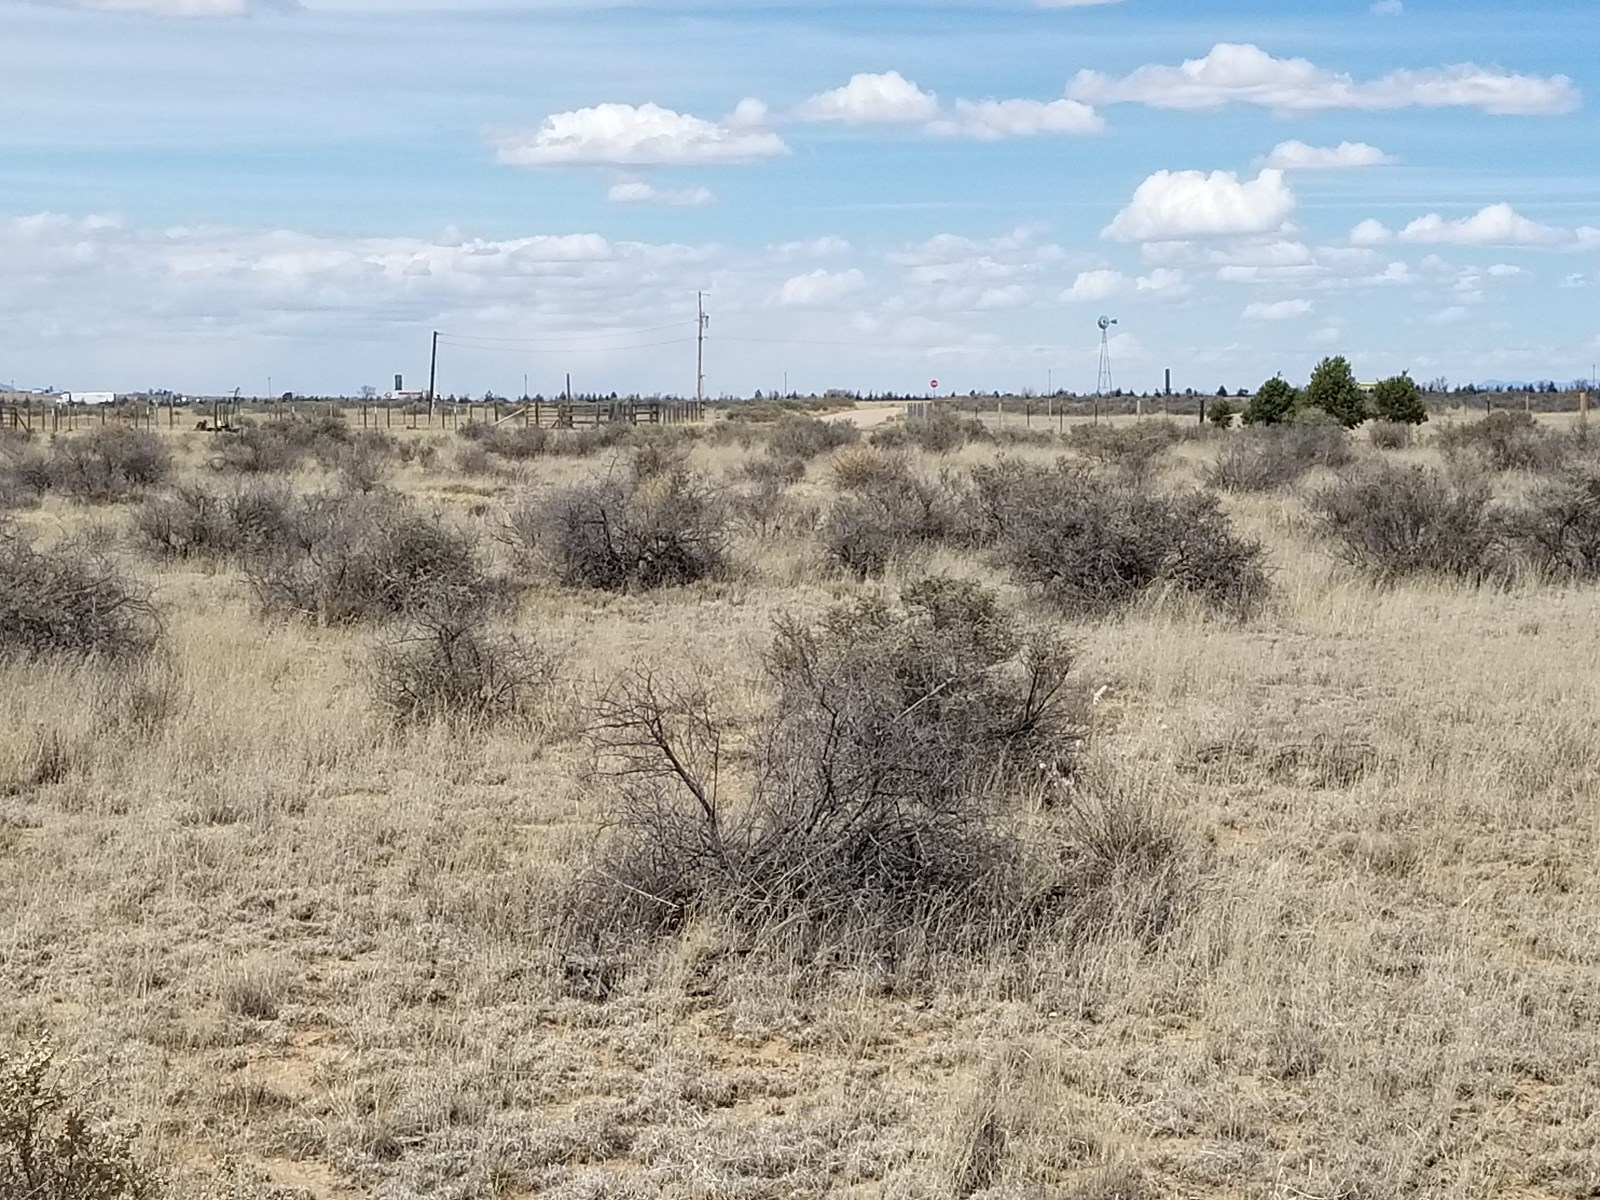 NM Residential Lot For Sale Torrance County Horses